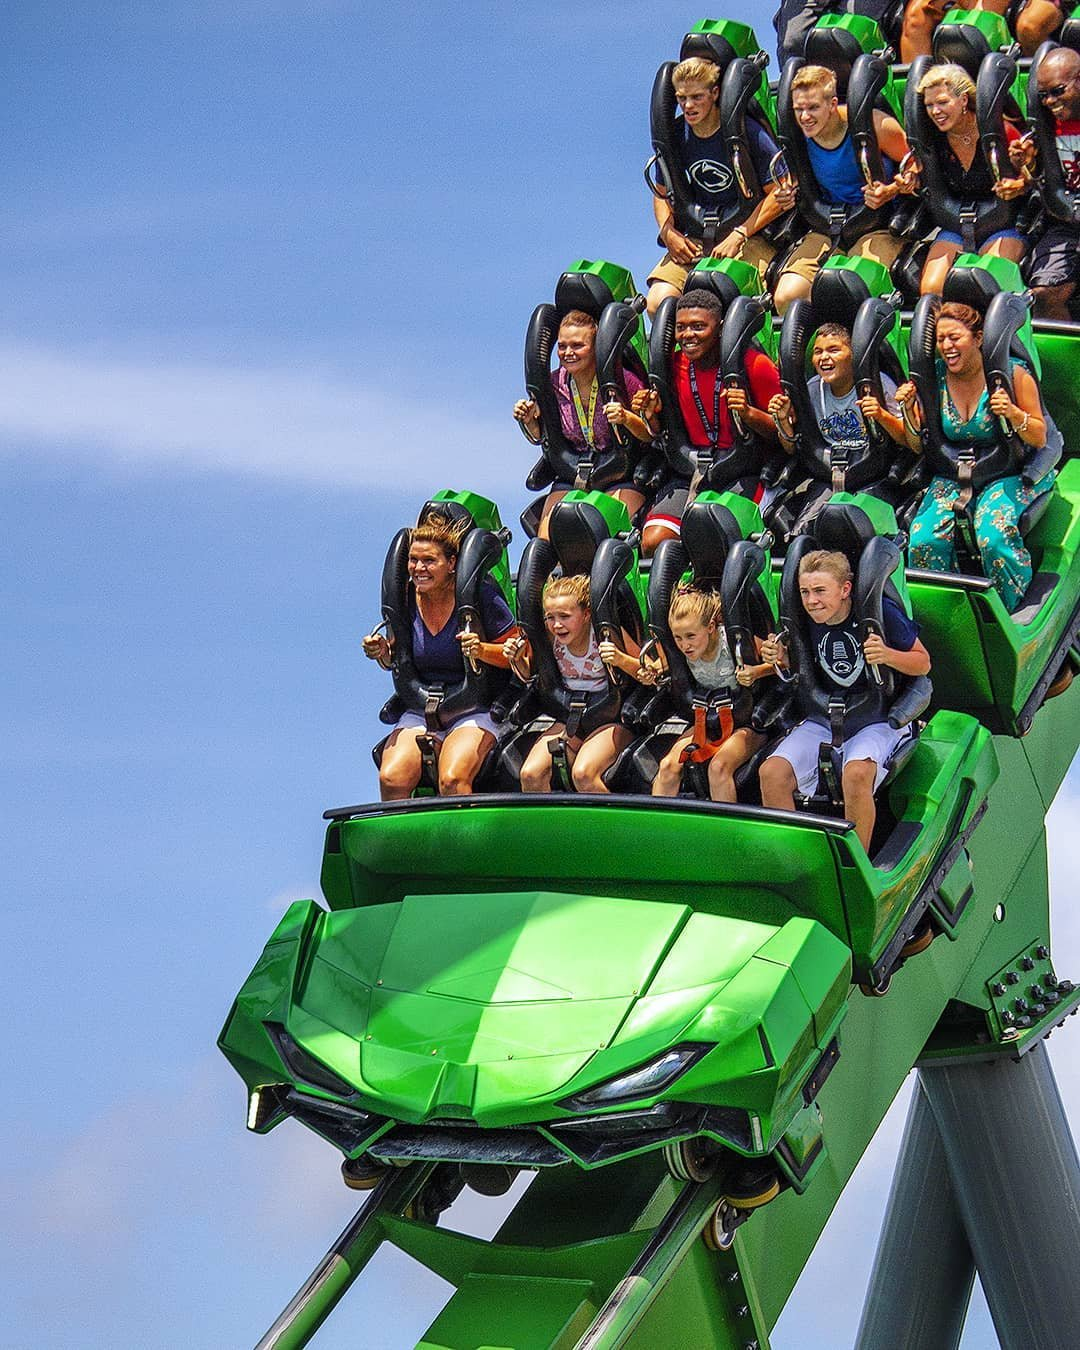 Vacationers enjoy the Incredible Hulk Coaster